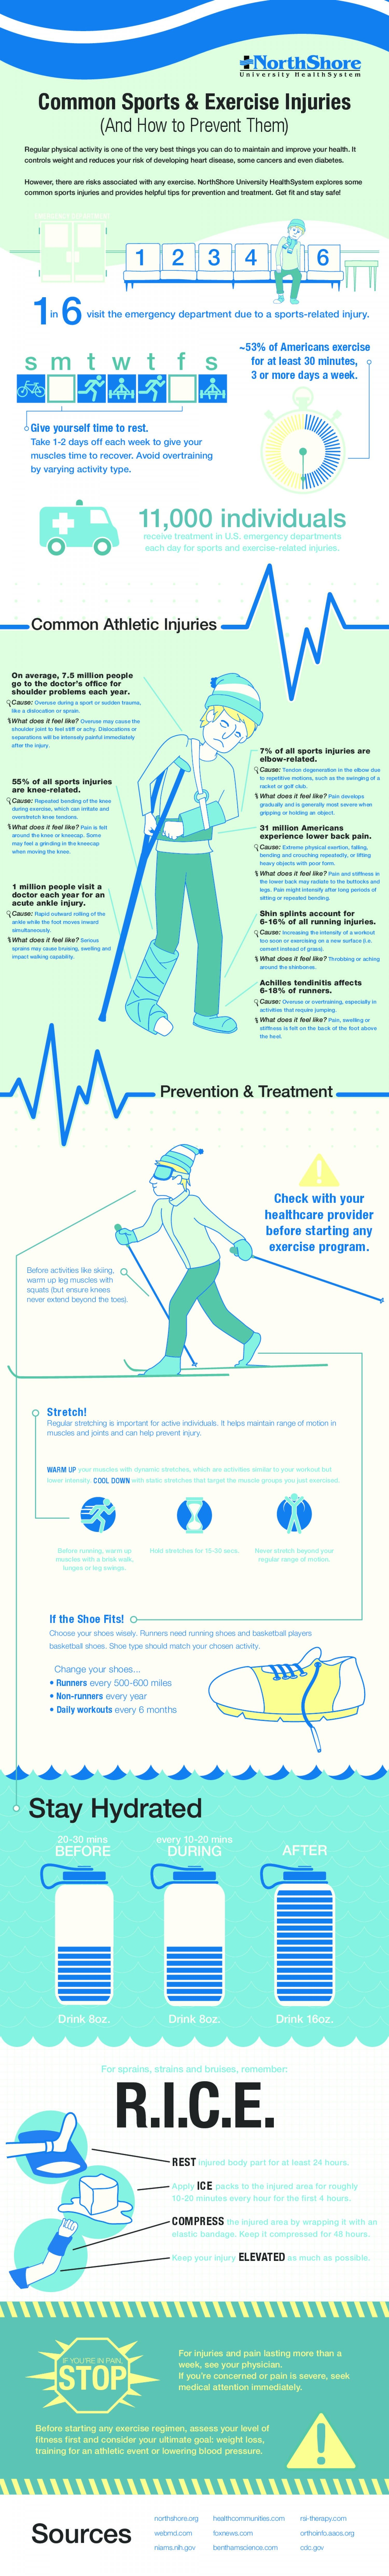 Common Sports Exercise Injuries Infographic Sports Injury Prevention Injury Prevention Athletic Injuries